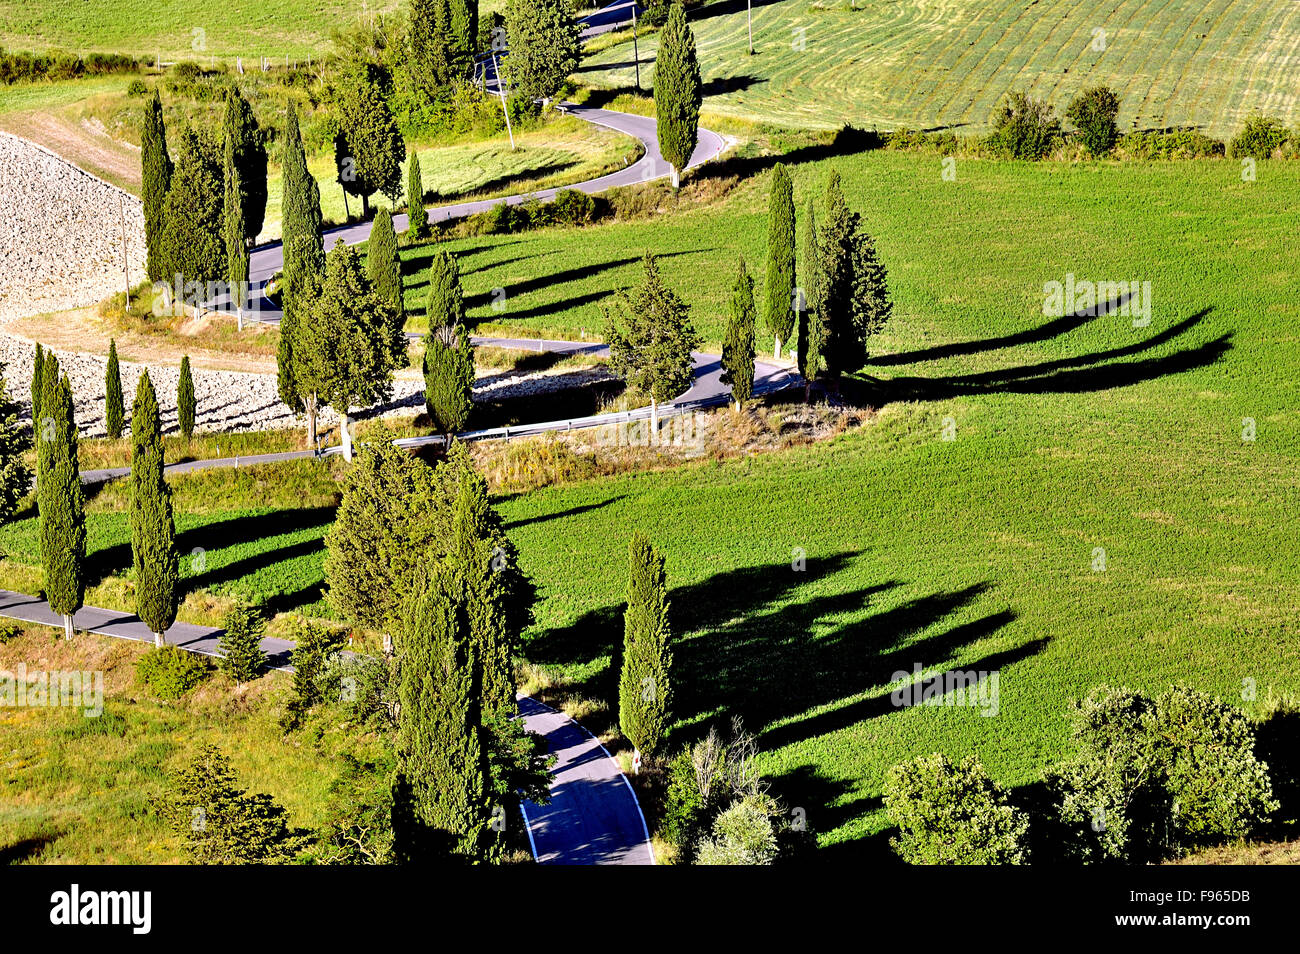 Curvy picturesque road in Tuscany fringed by cypresses, Tuscany, Italy - Stock Image